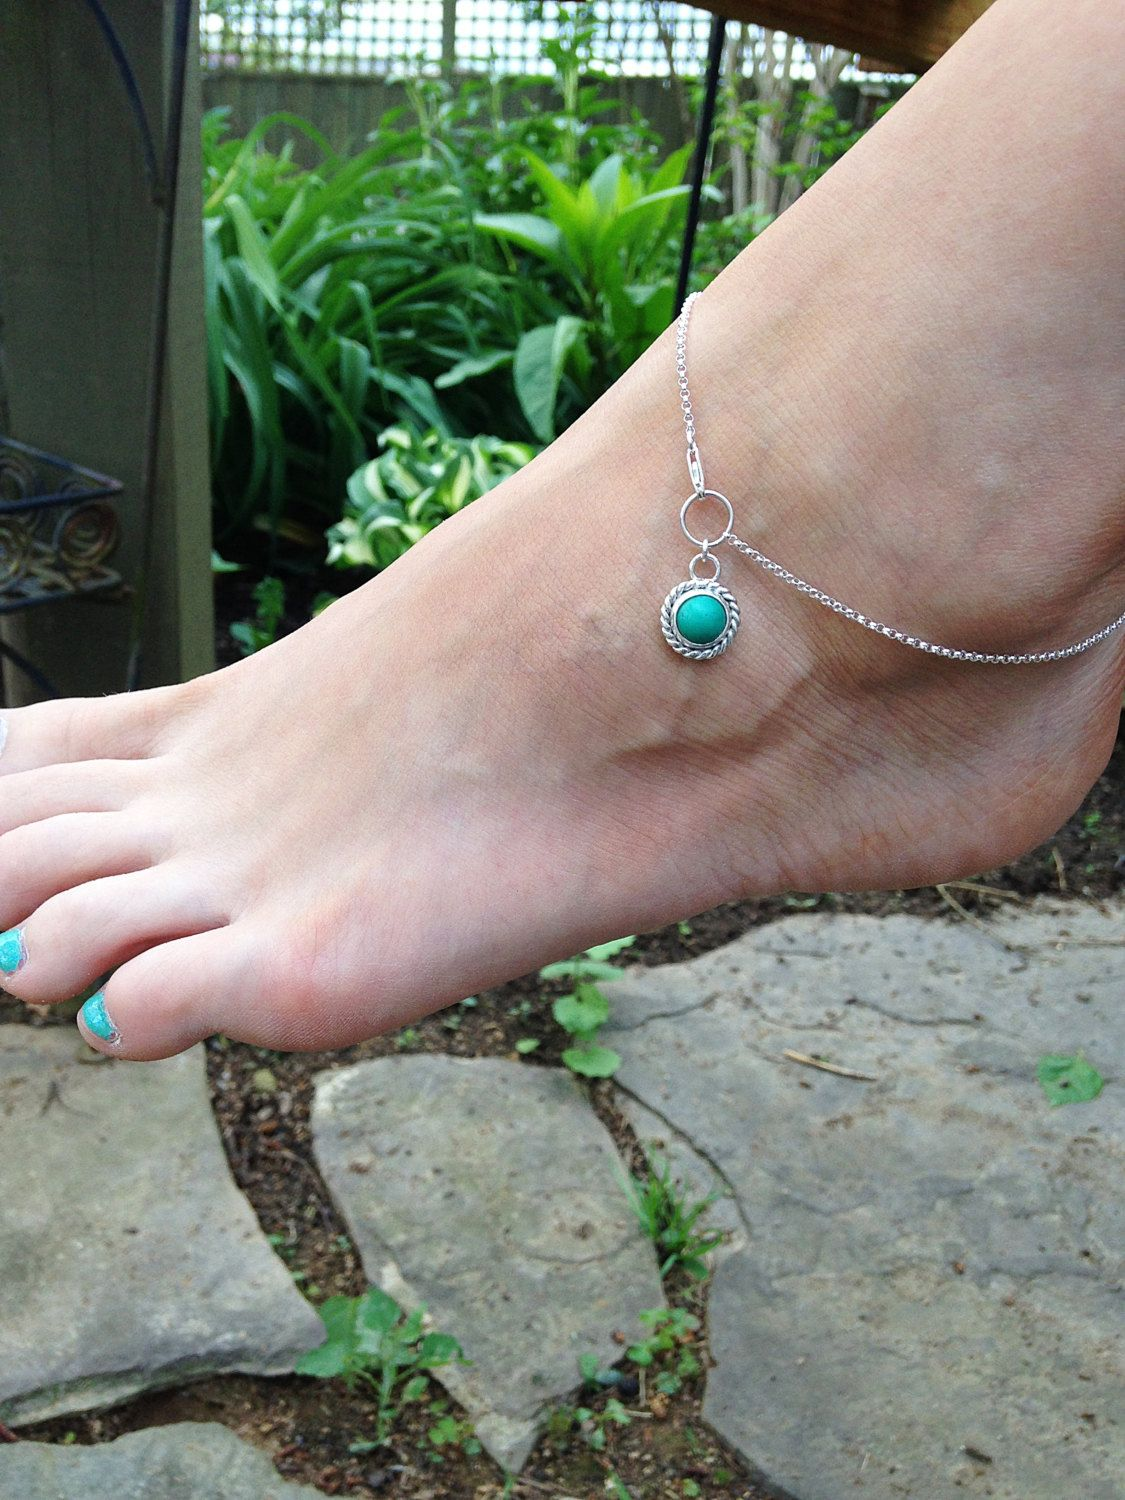 Turquoise Sterling Silver Anklet Cabochon stone Lobster claw clasp